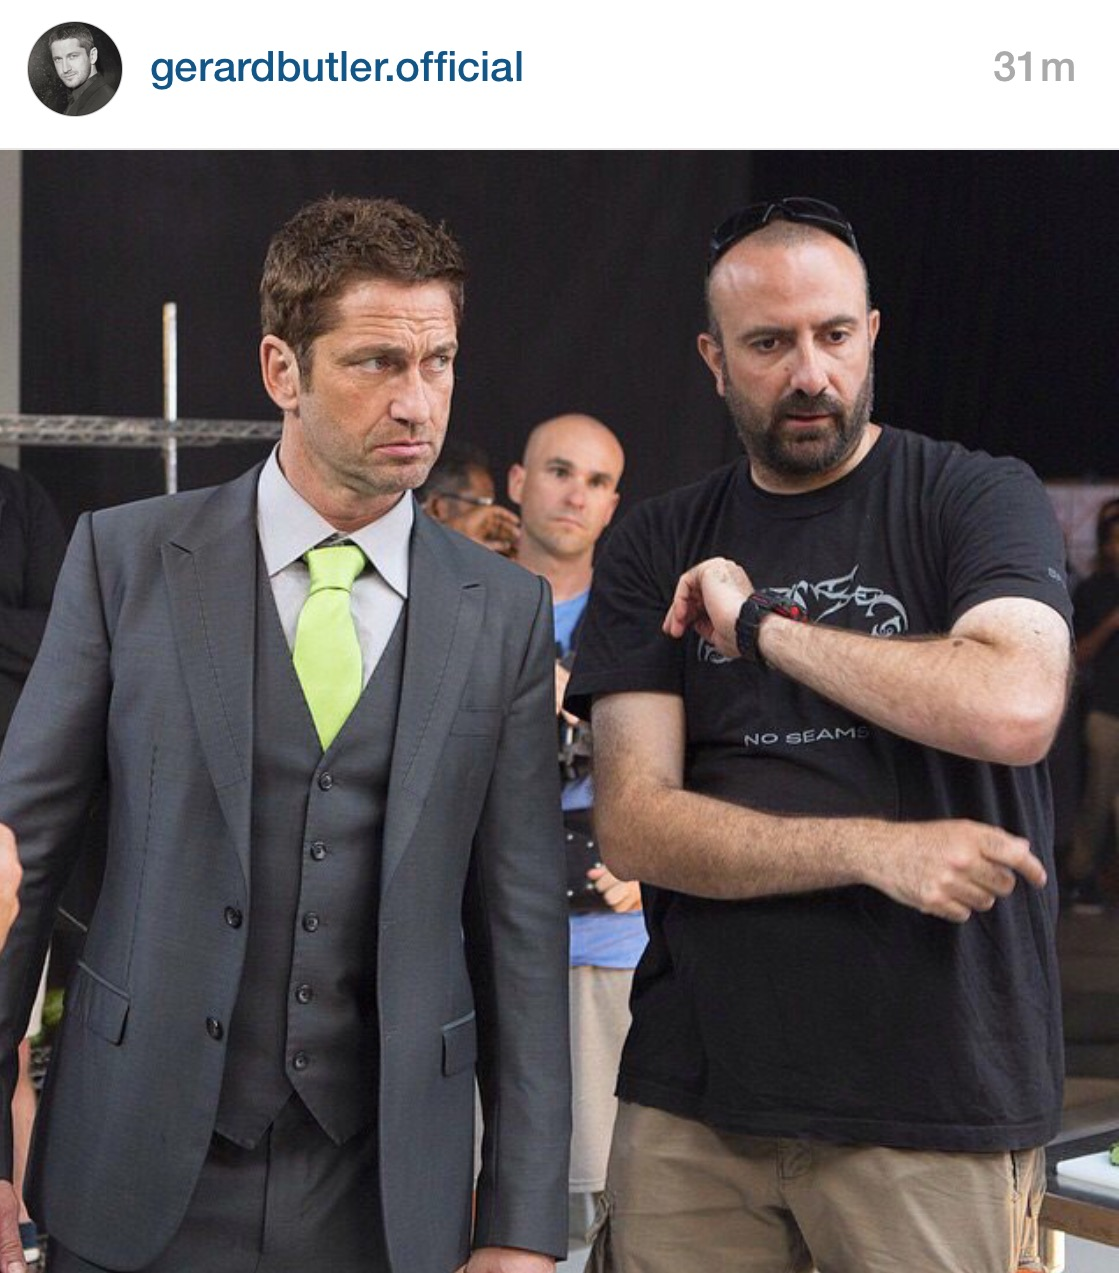 Sayoc Instructor and Director, Zee Alhusaini, and Gerard Butler filming Etisalat ad